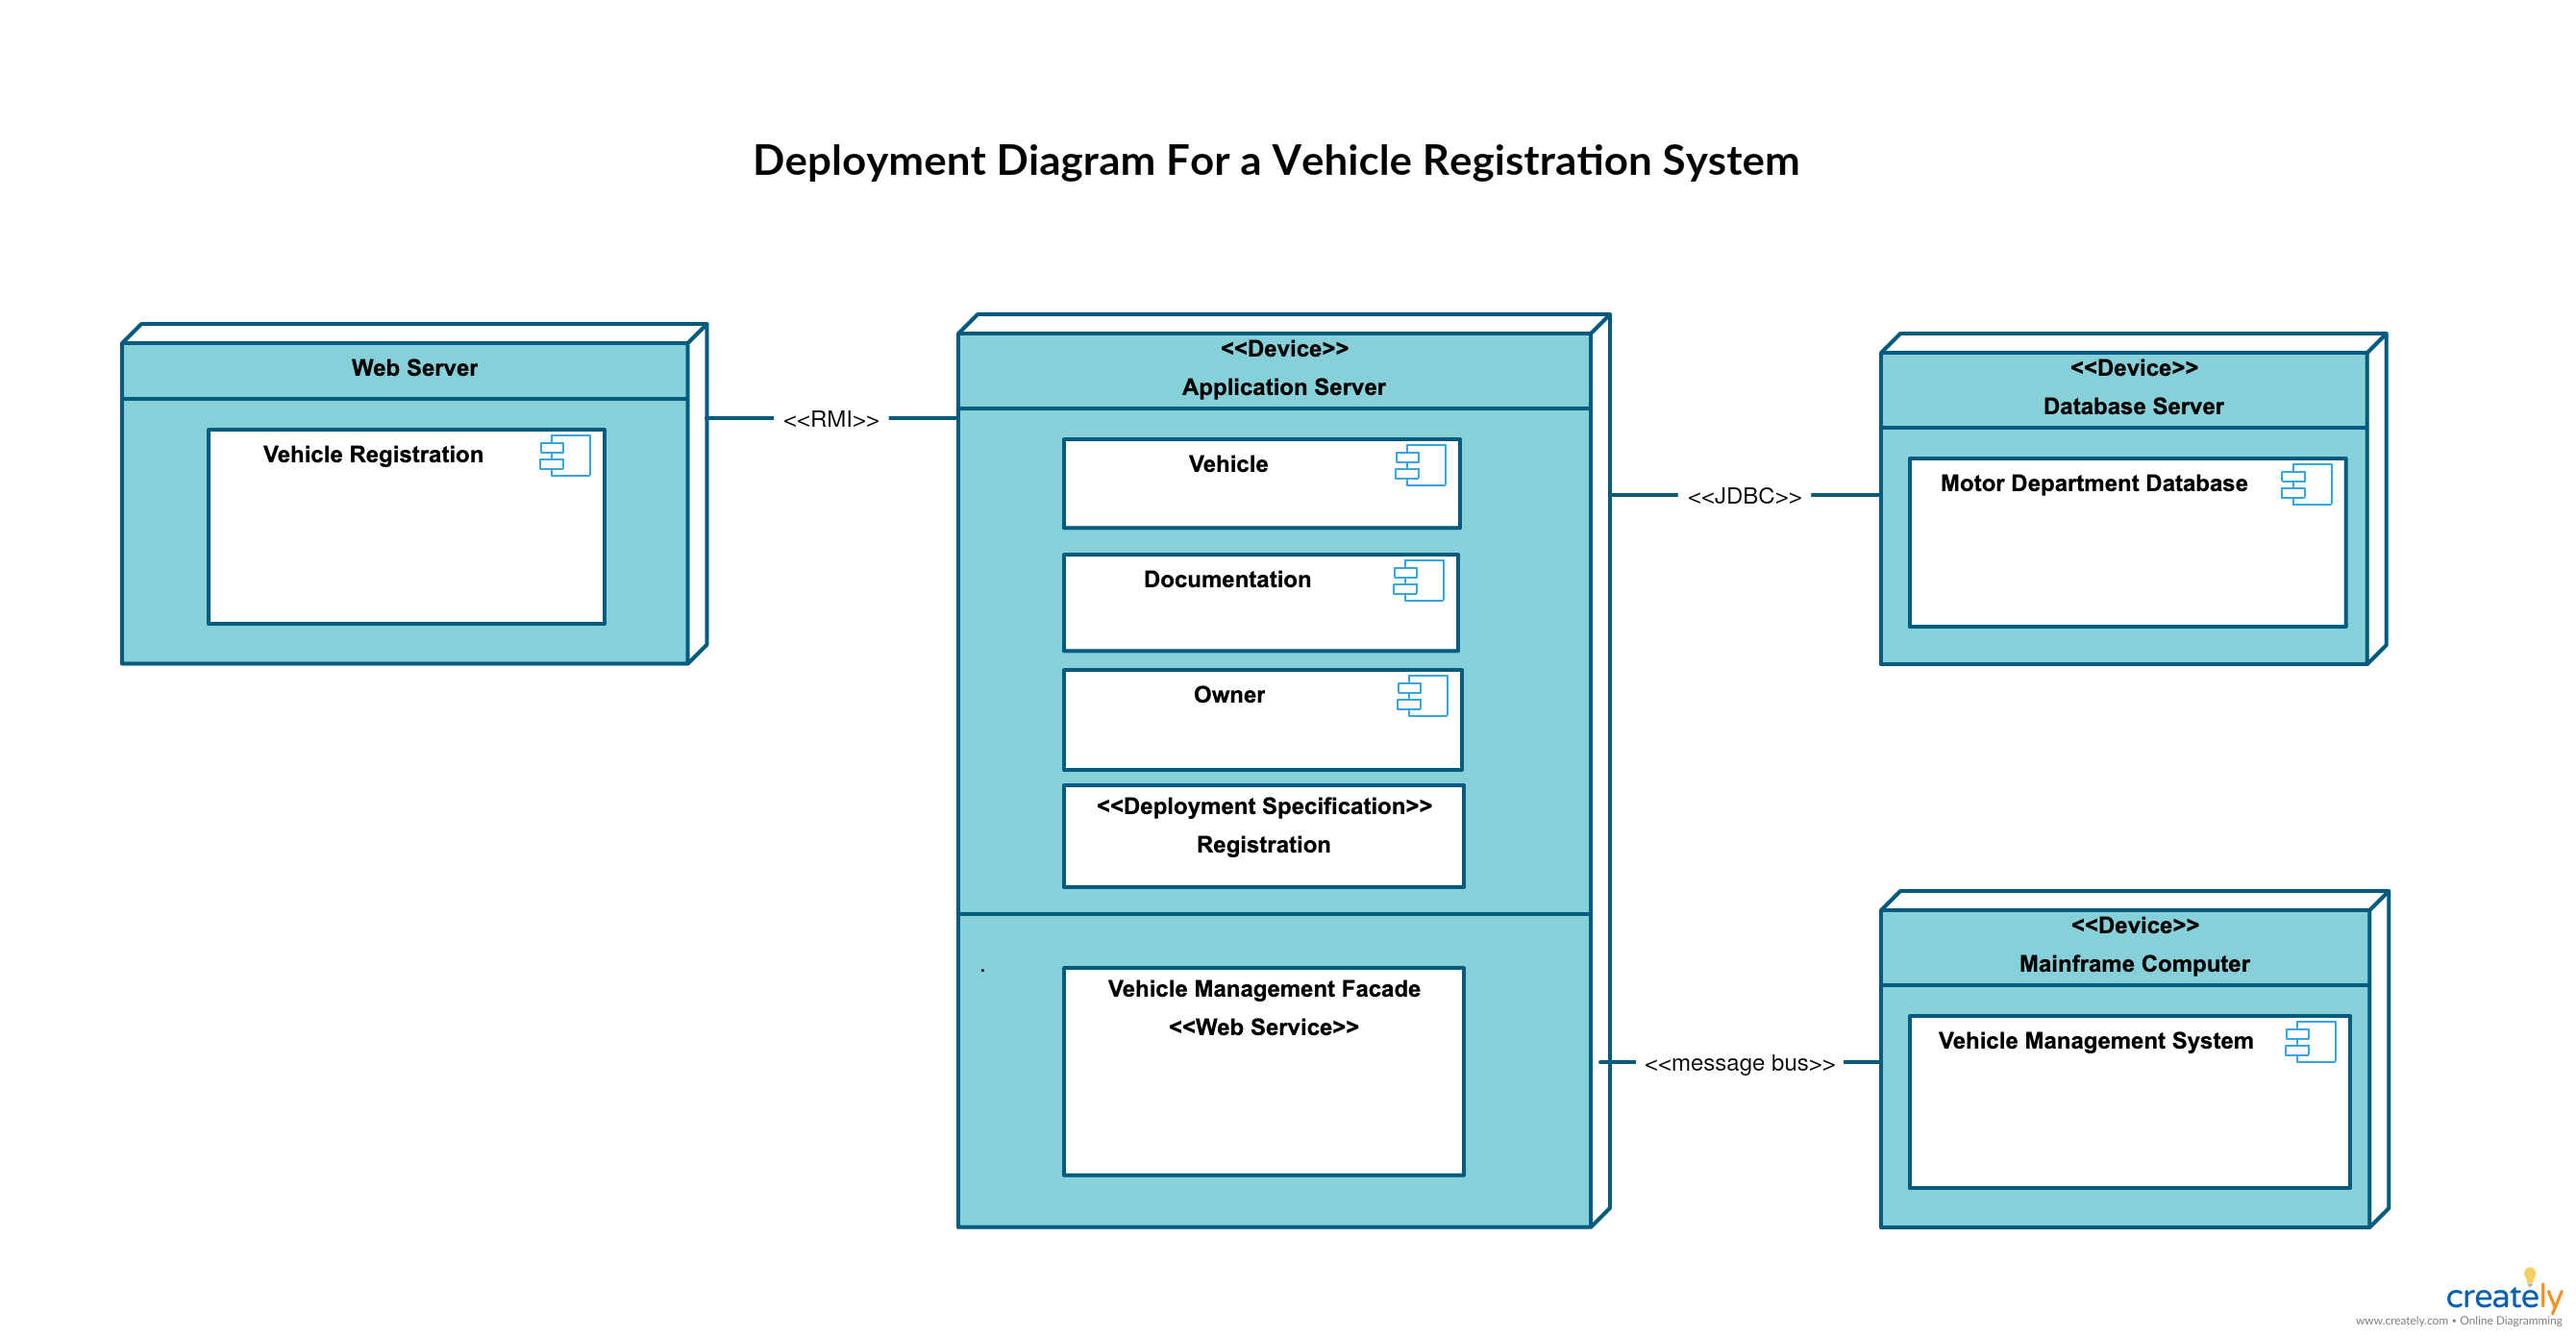 Uml Diagram Types Learn About All 14 Types Of Uml Diagrams Deployment Diagram Component Diagram